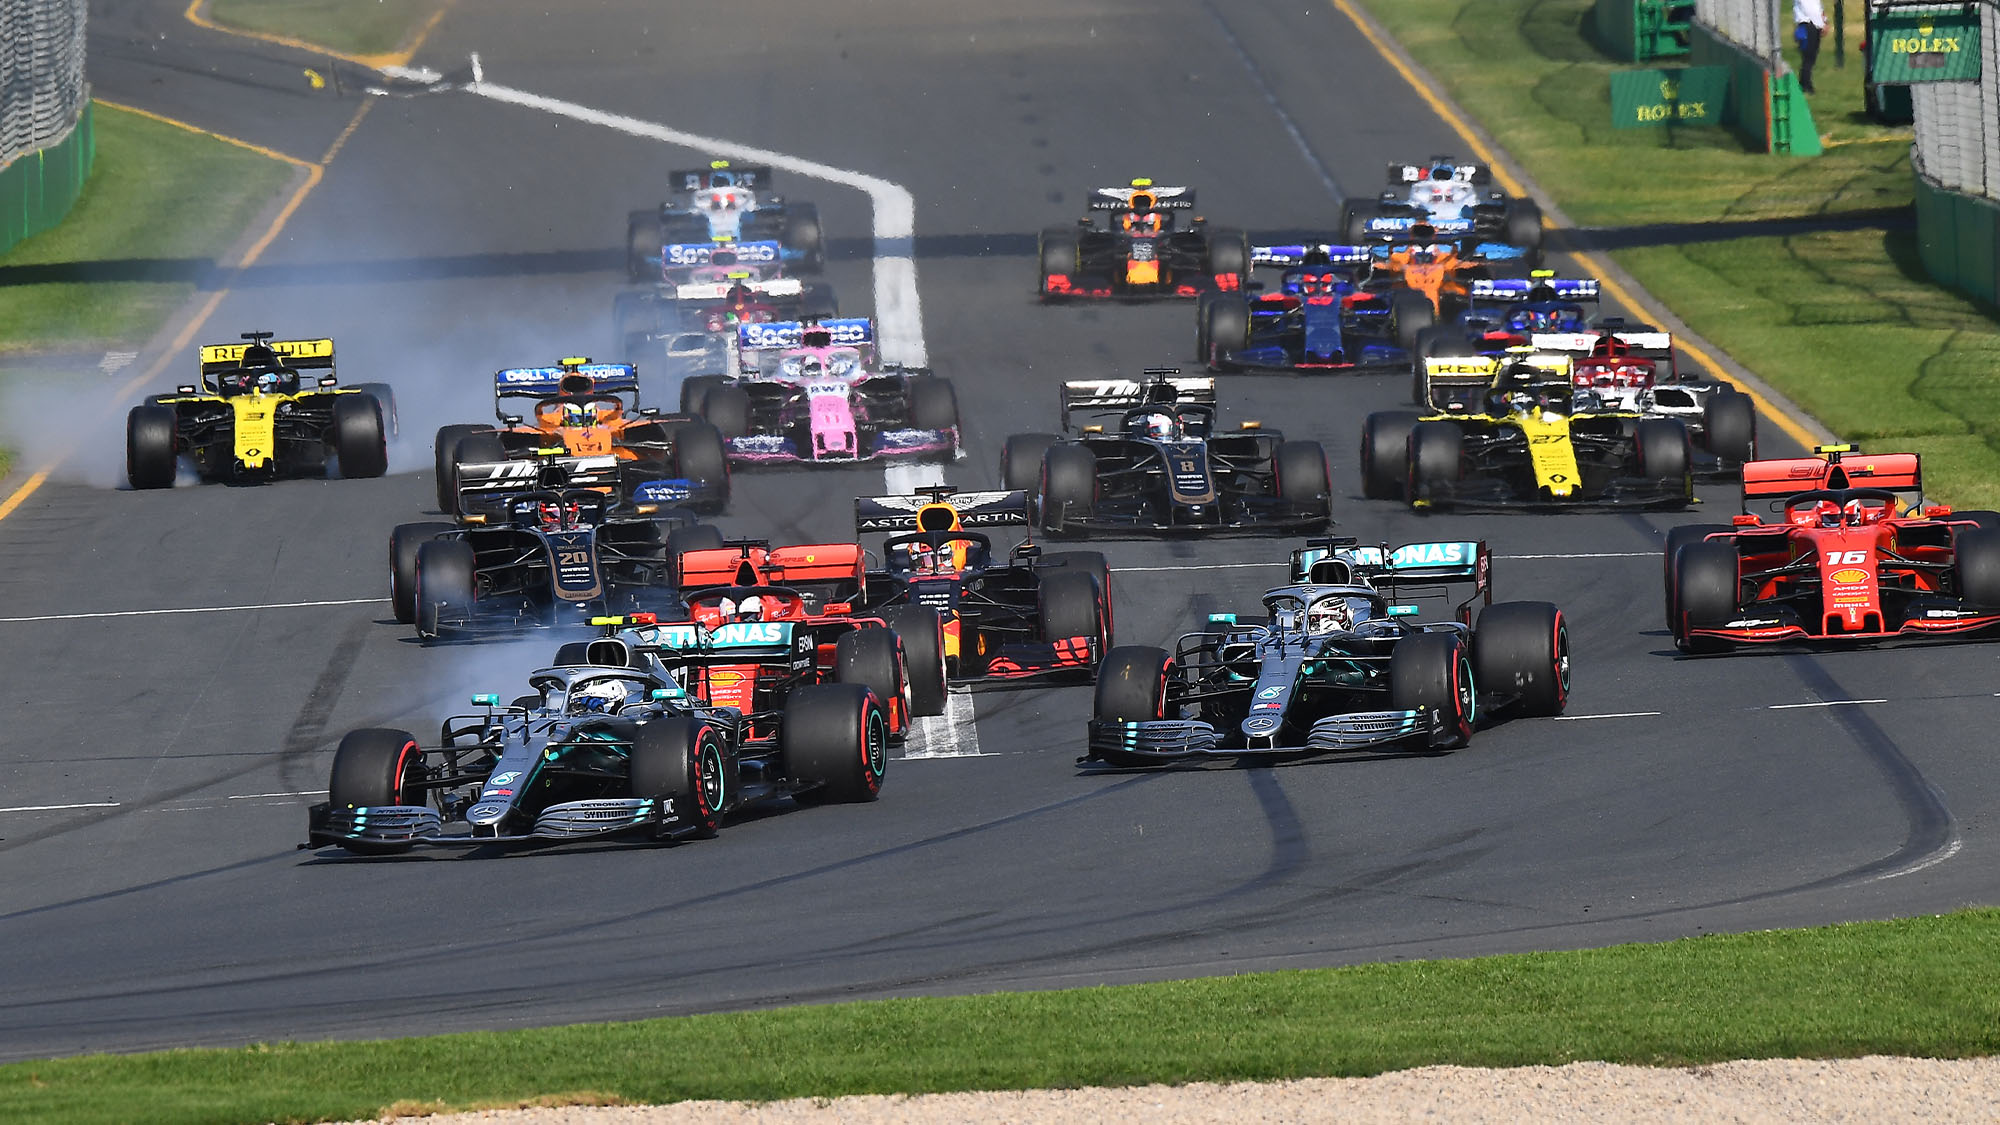 Valtteri Bottas leads Mercedes teammate Lewis Hamilton as the start of the 2019 Australian Grand Prix in Albert Park, Melbourne. Daniel Ricciardo (Renault) crashes). Photo: Grand Prix Photo